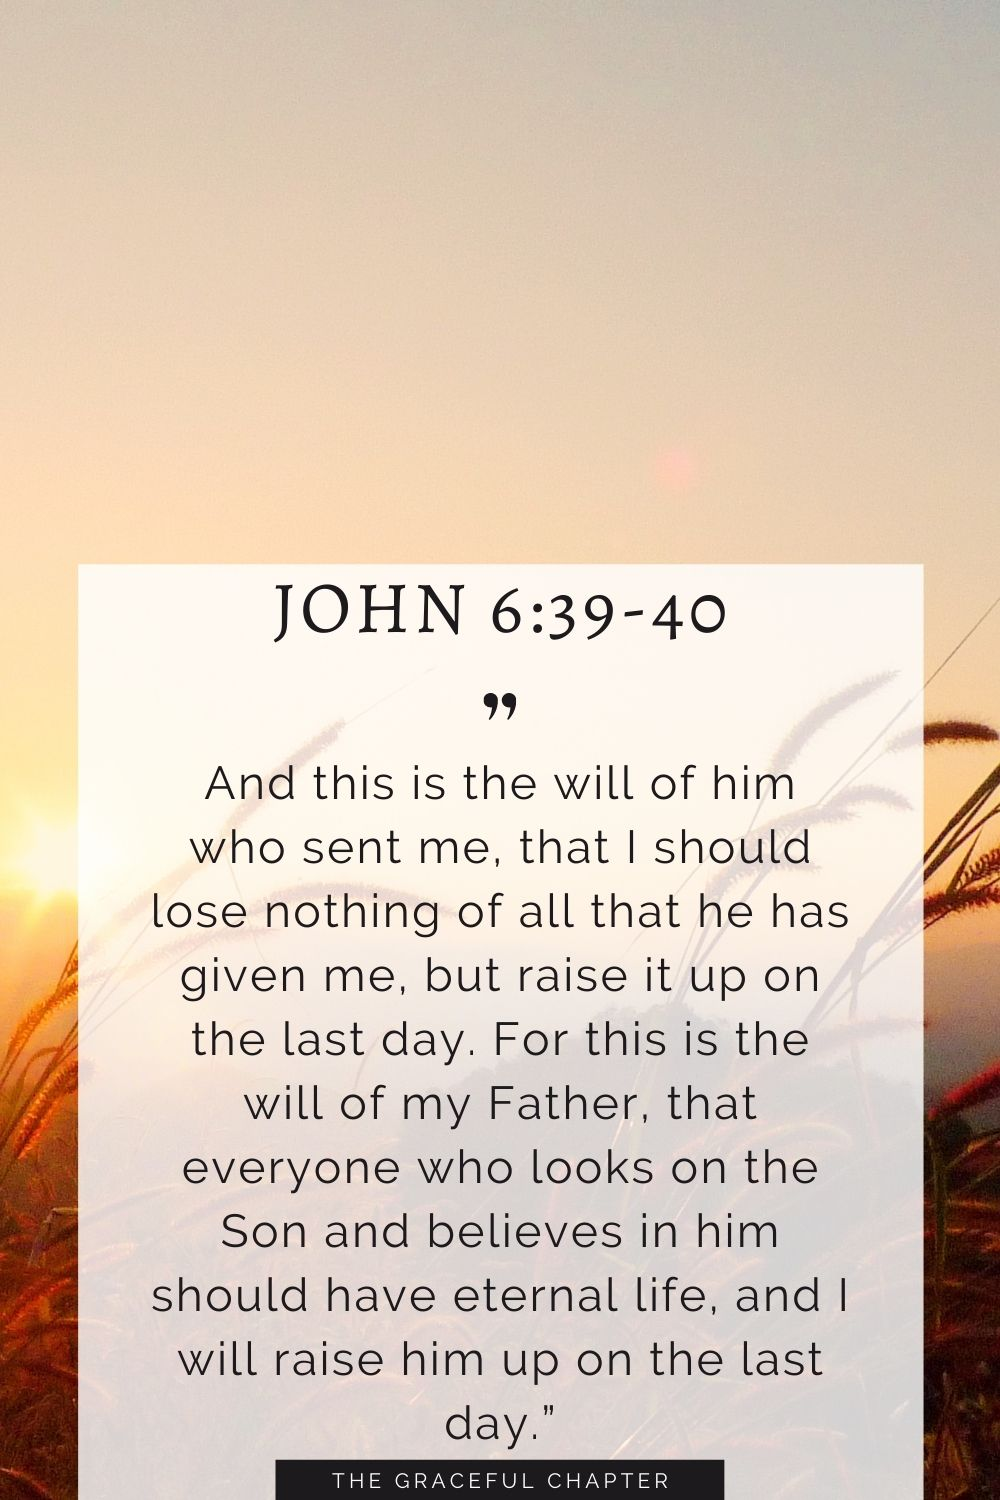 """And this is the will of him who sent me, that I should lose nothing of all that he has given me, but raise it up on the last day. For this is the will of my Father, that everyone who looks on the Son and believes in him should have eternal life, and I will raise him up on the last day."""" John 6:39-40"""